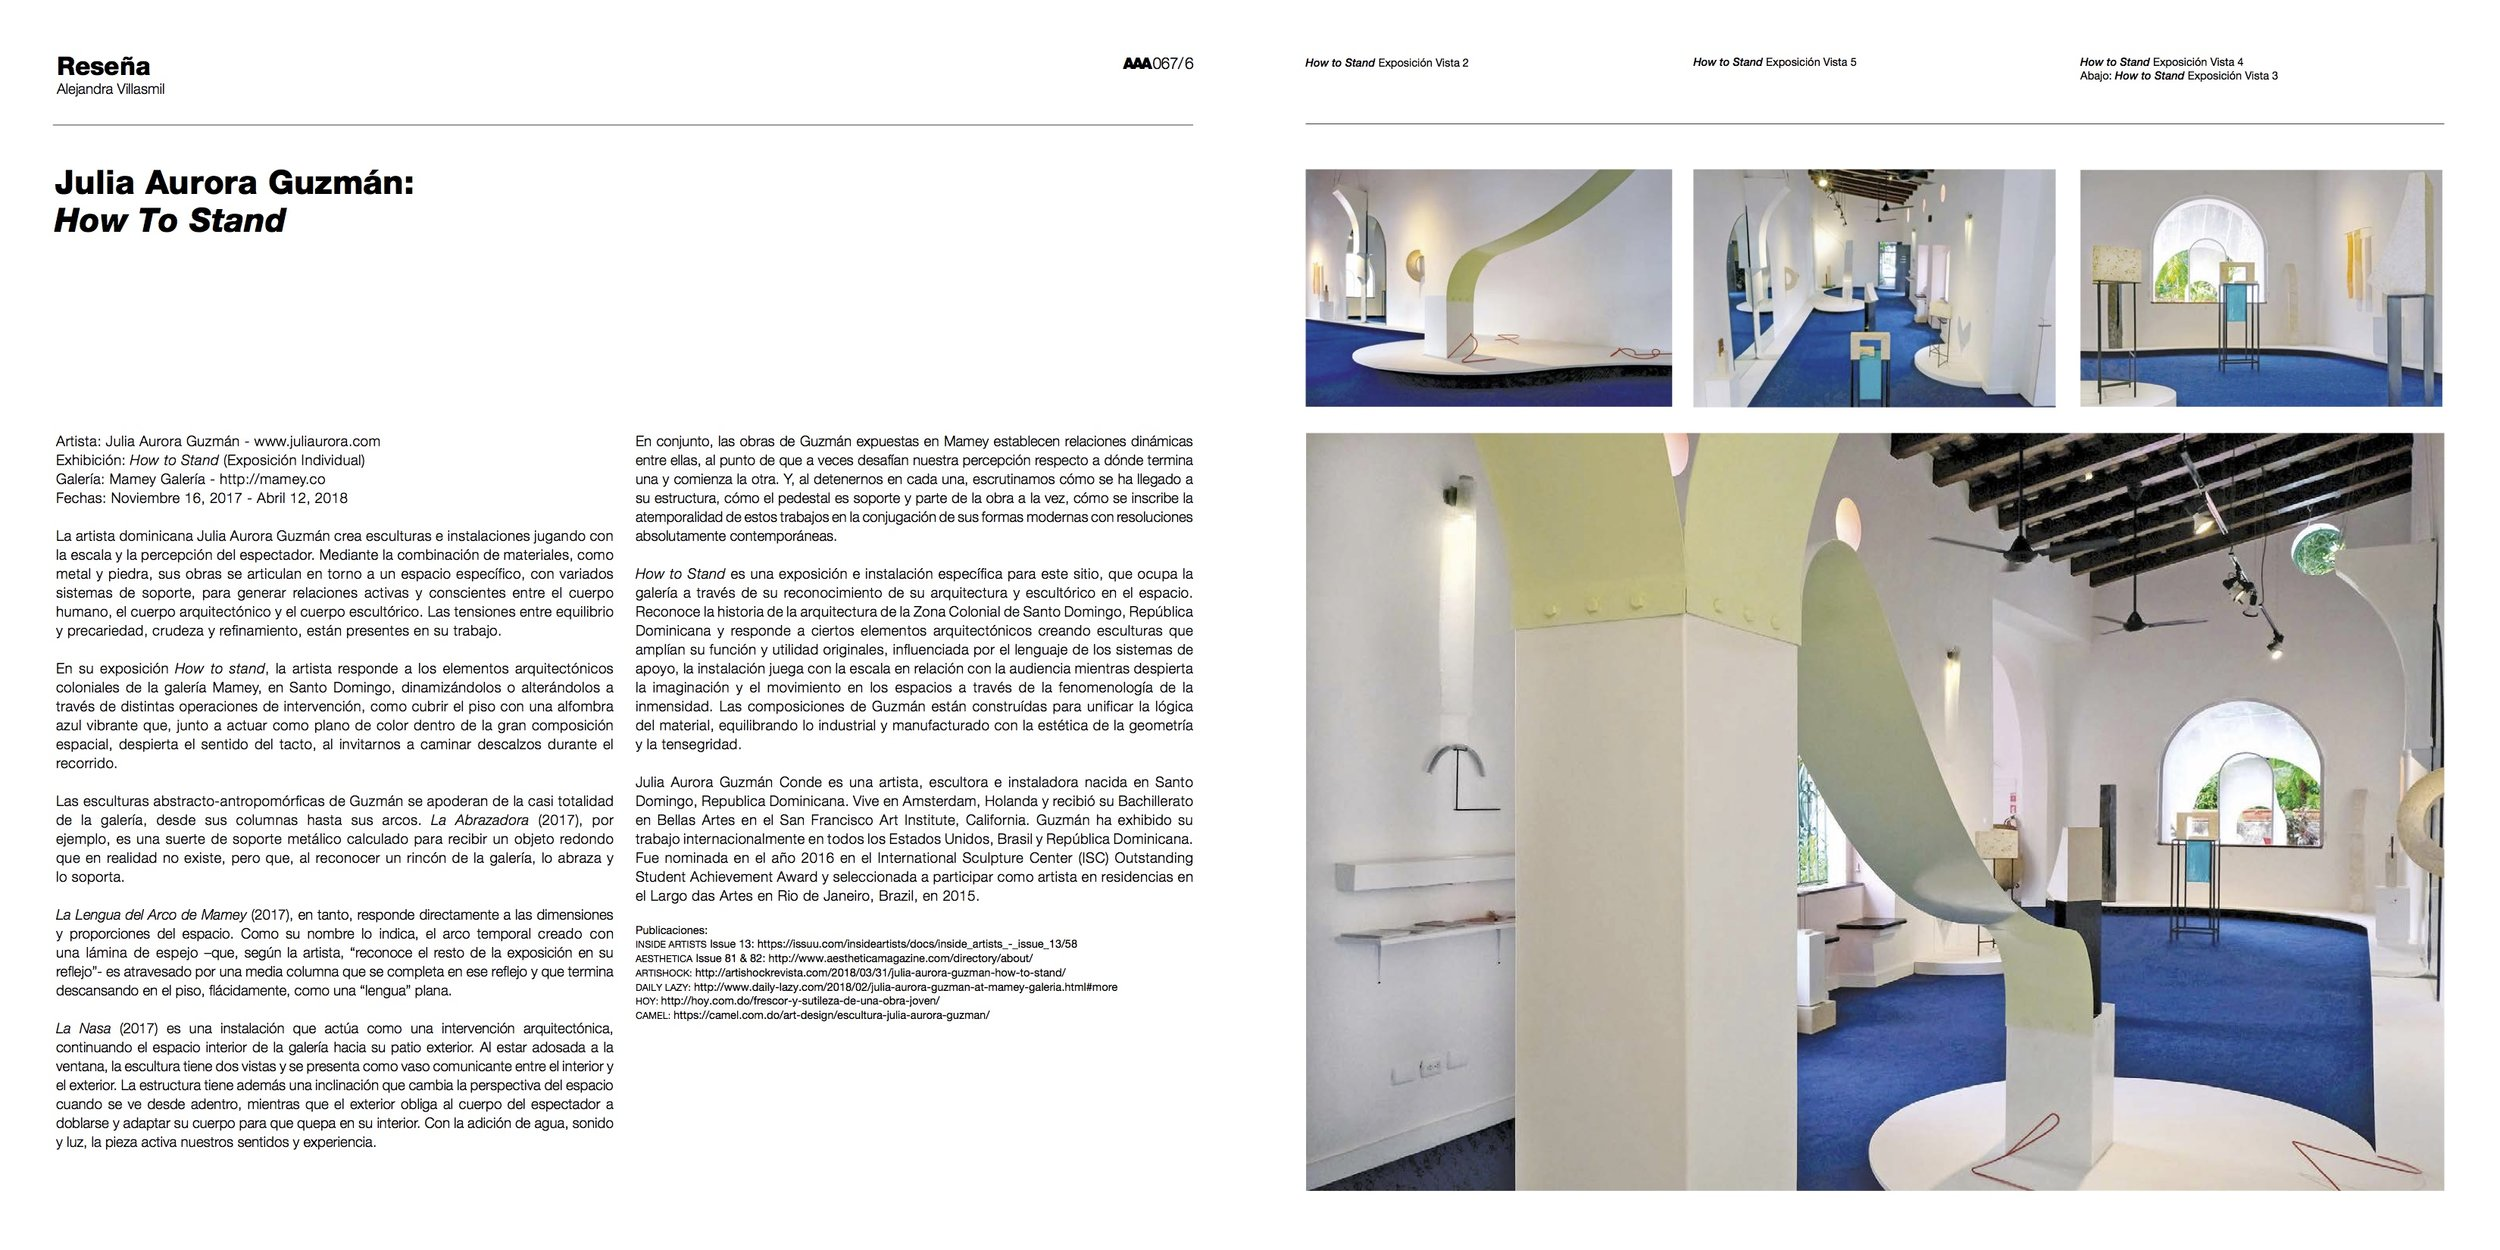 ARCHIVOS DE ARQUITECTURA ANTILLANA - AAA Magazine, since 1996 a leading guide to architecture, interior design, urbanism, history and culture of the great Caribbean. The issue 067 features Julia Aurora Guzmán's solo exhibition How to Stand in a 8 page feature.